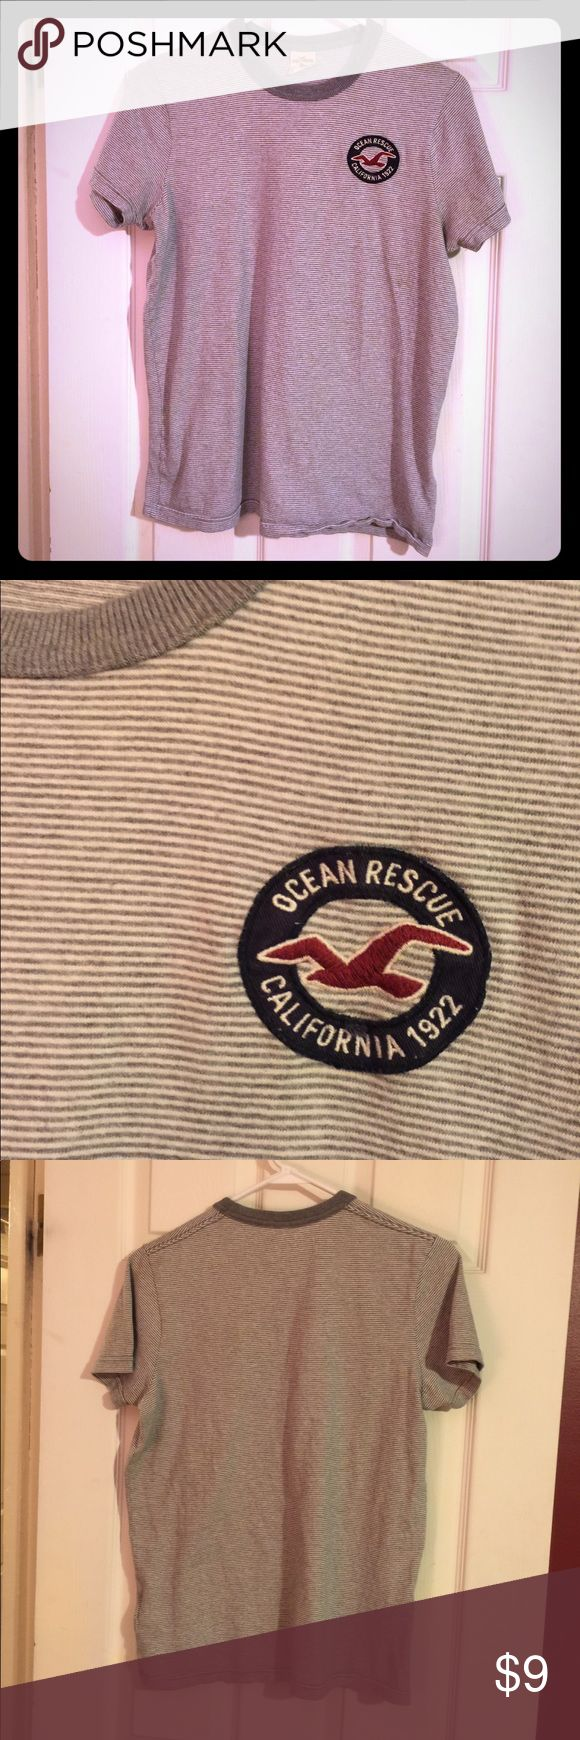 Hollister Ocean Rescue T-Shirt Gently loved, in nice condition Hollister t-Shirt for a man or woman. Hollister Shirts Tees - Short Sleeve